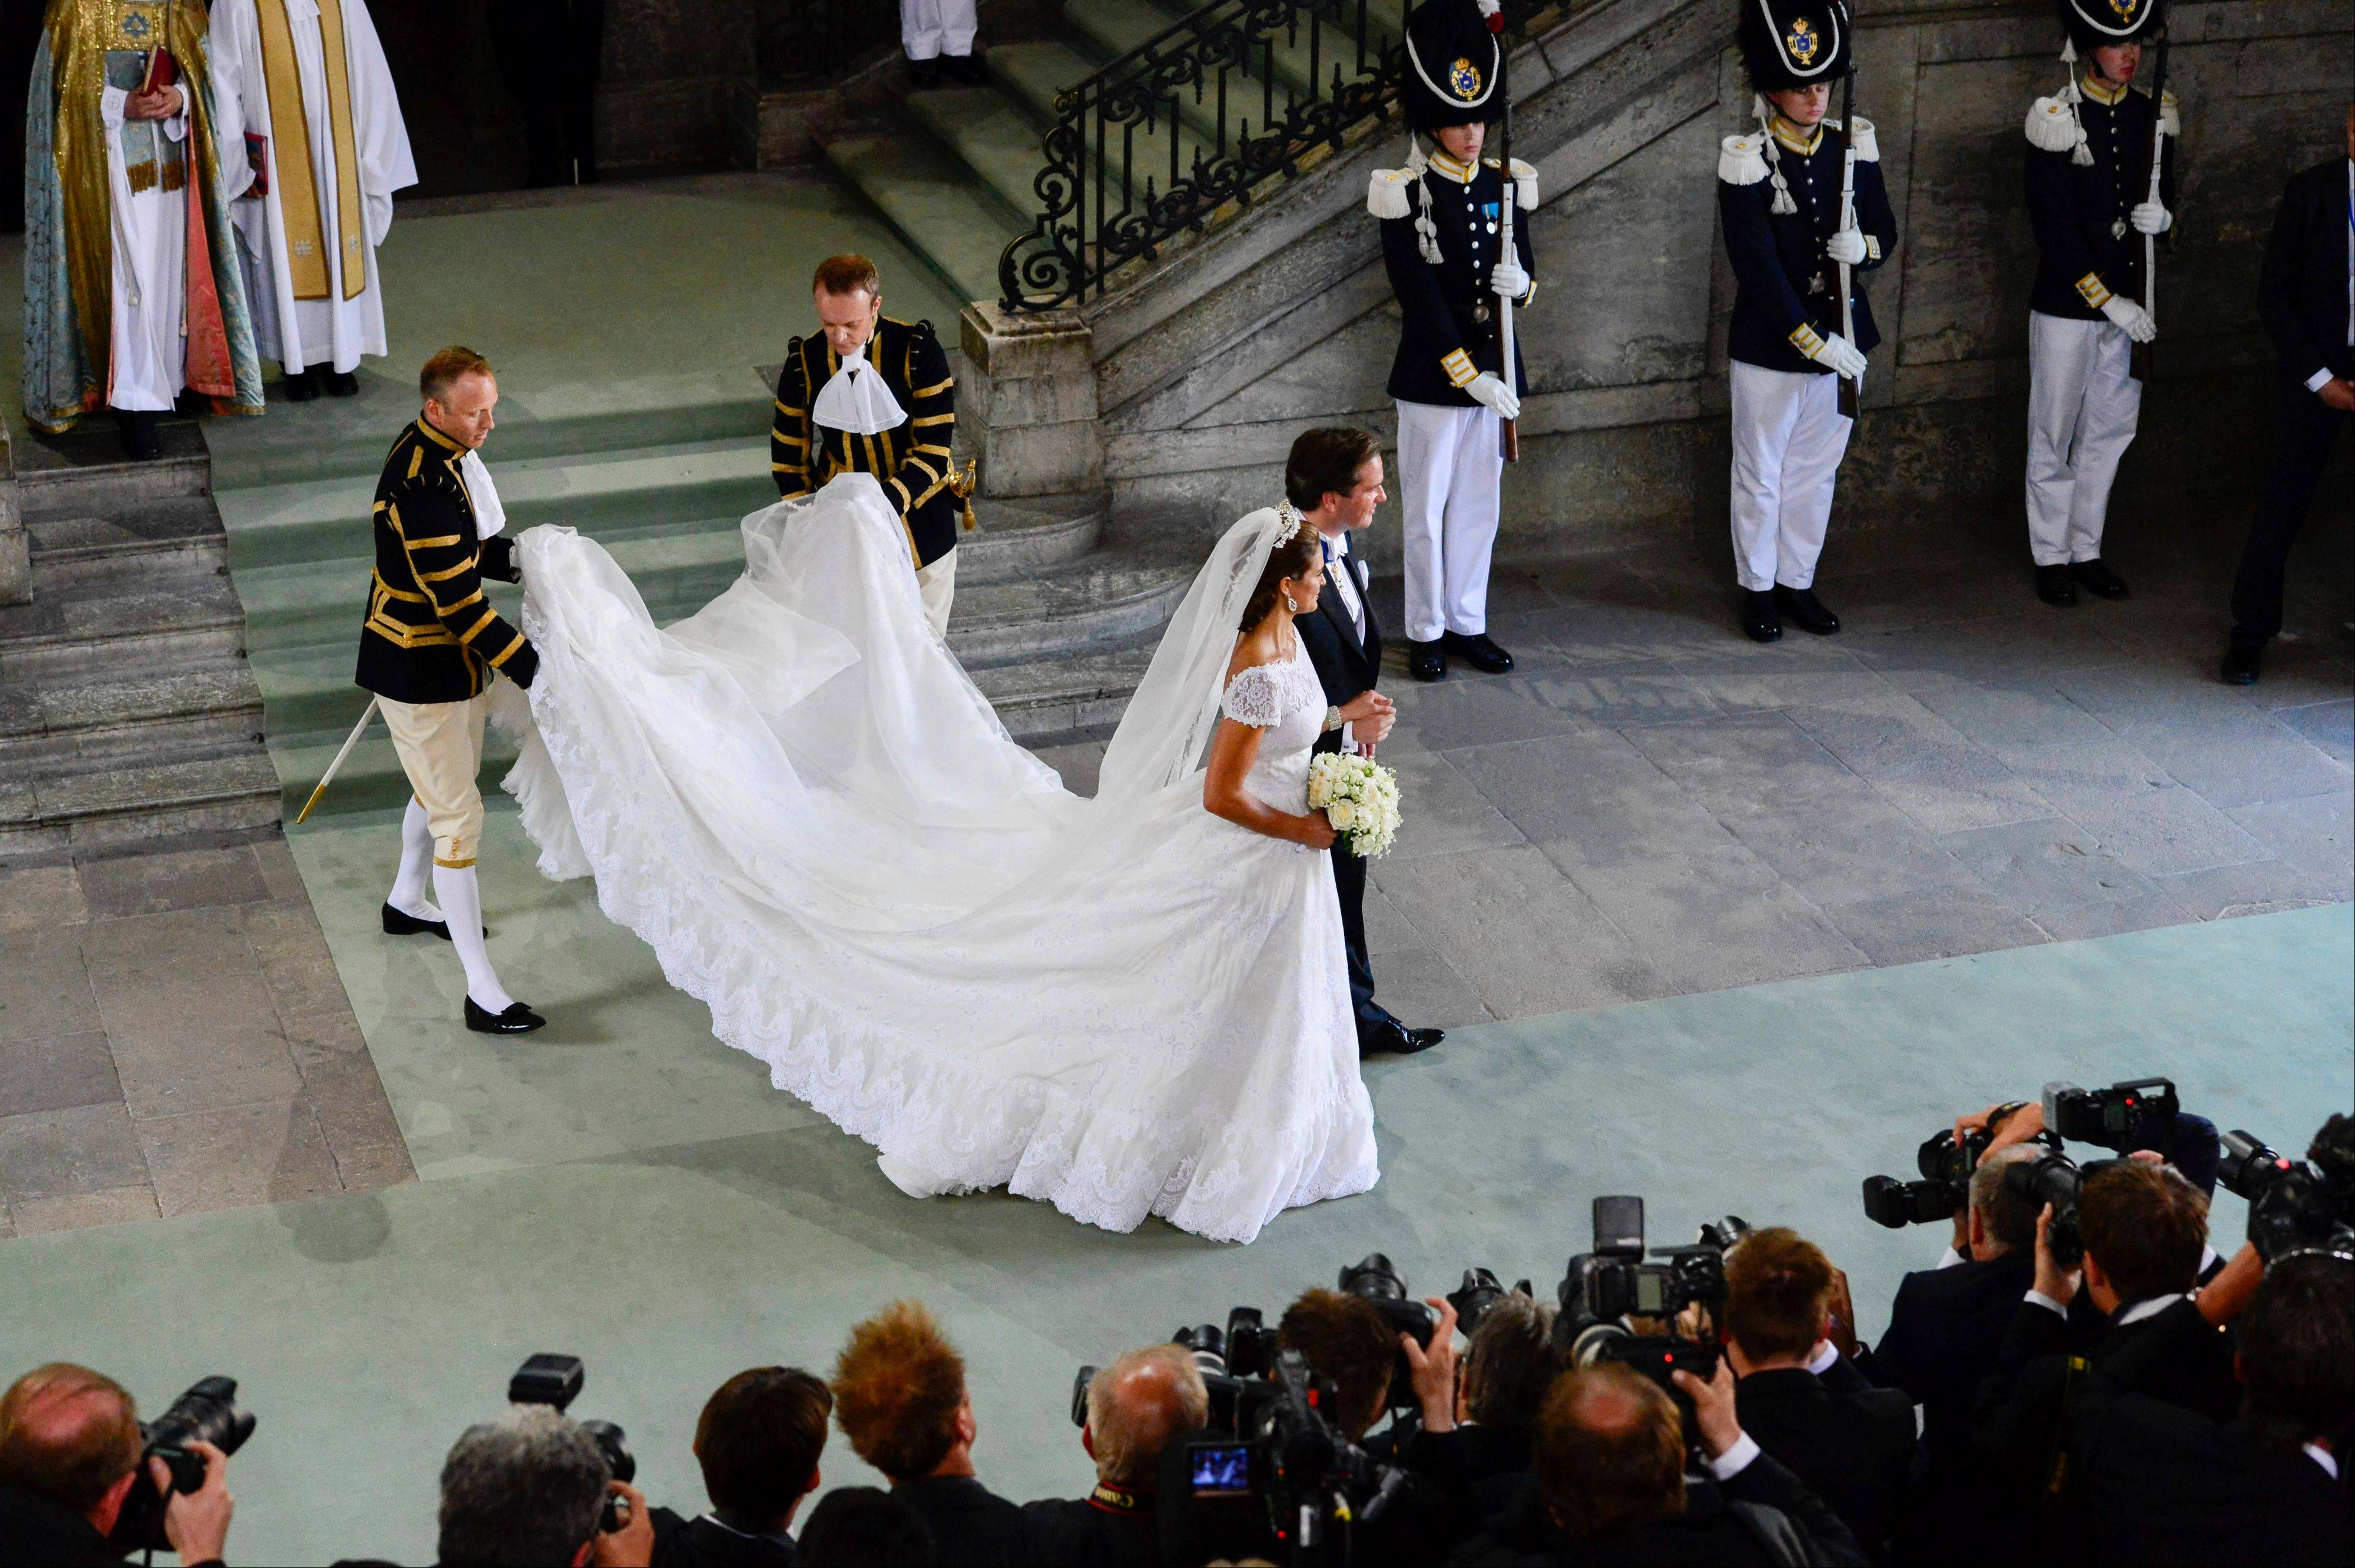 Sweden's Princess Madeleine and Christopher O'Neill smile outside the Royal Chapel after their wedding ceremony in Stockholm, Saturday June 8.